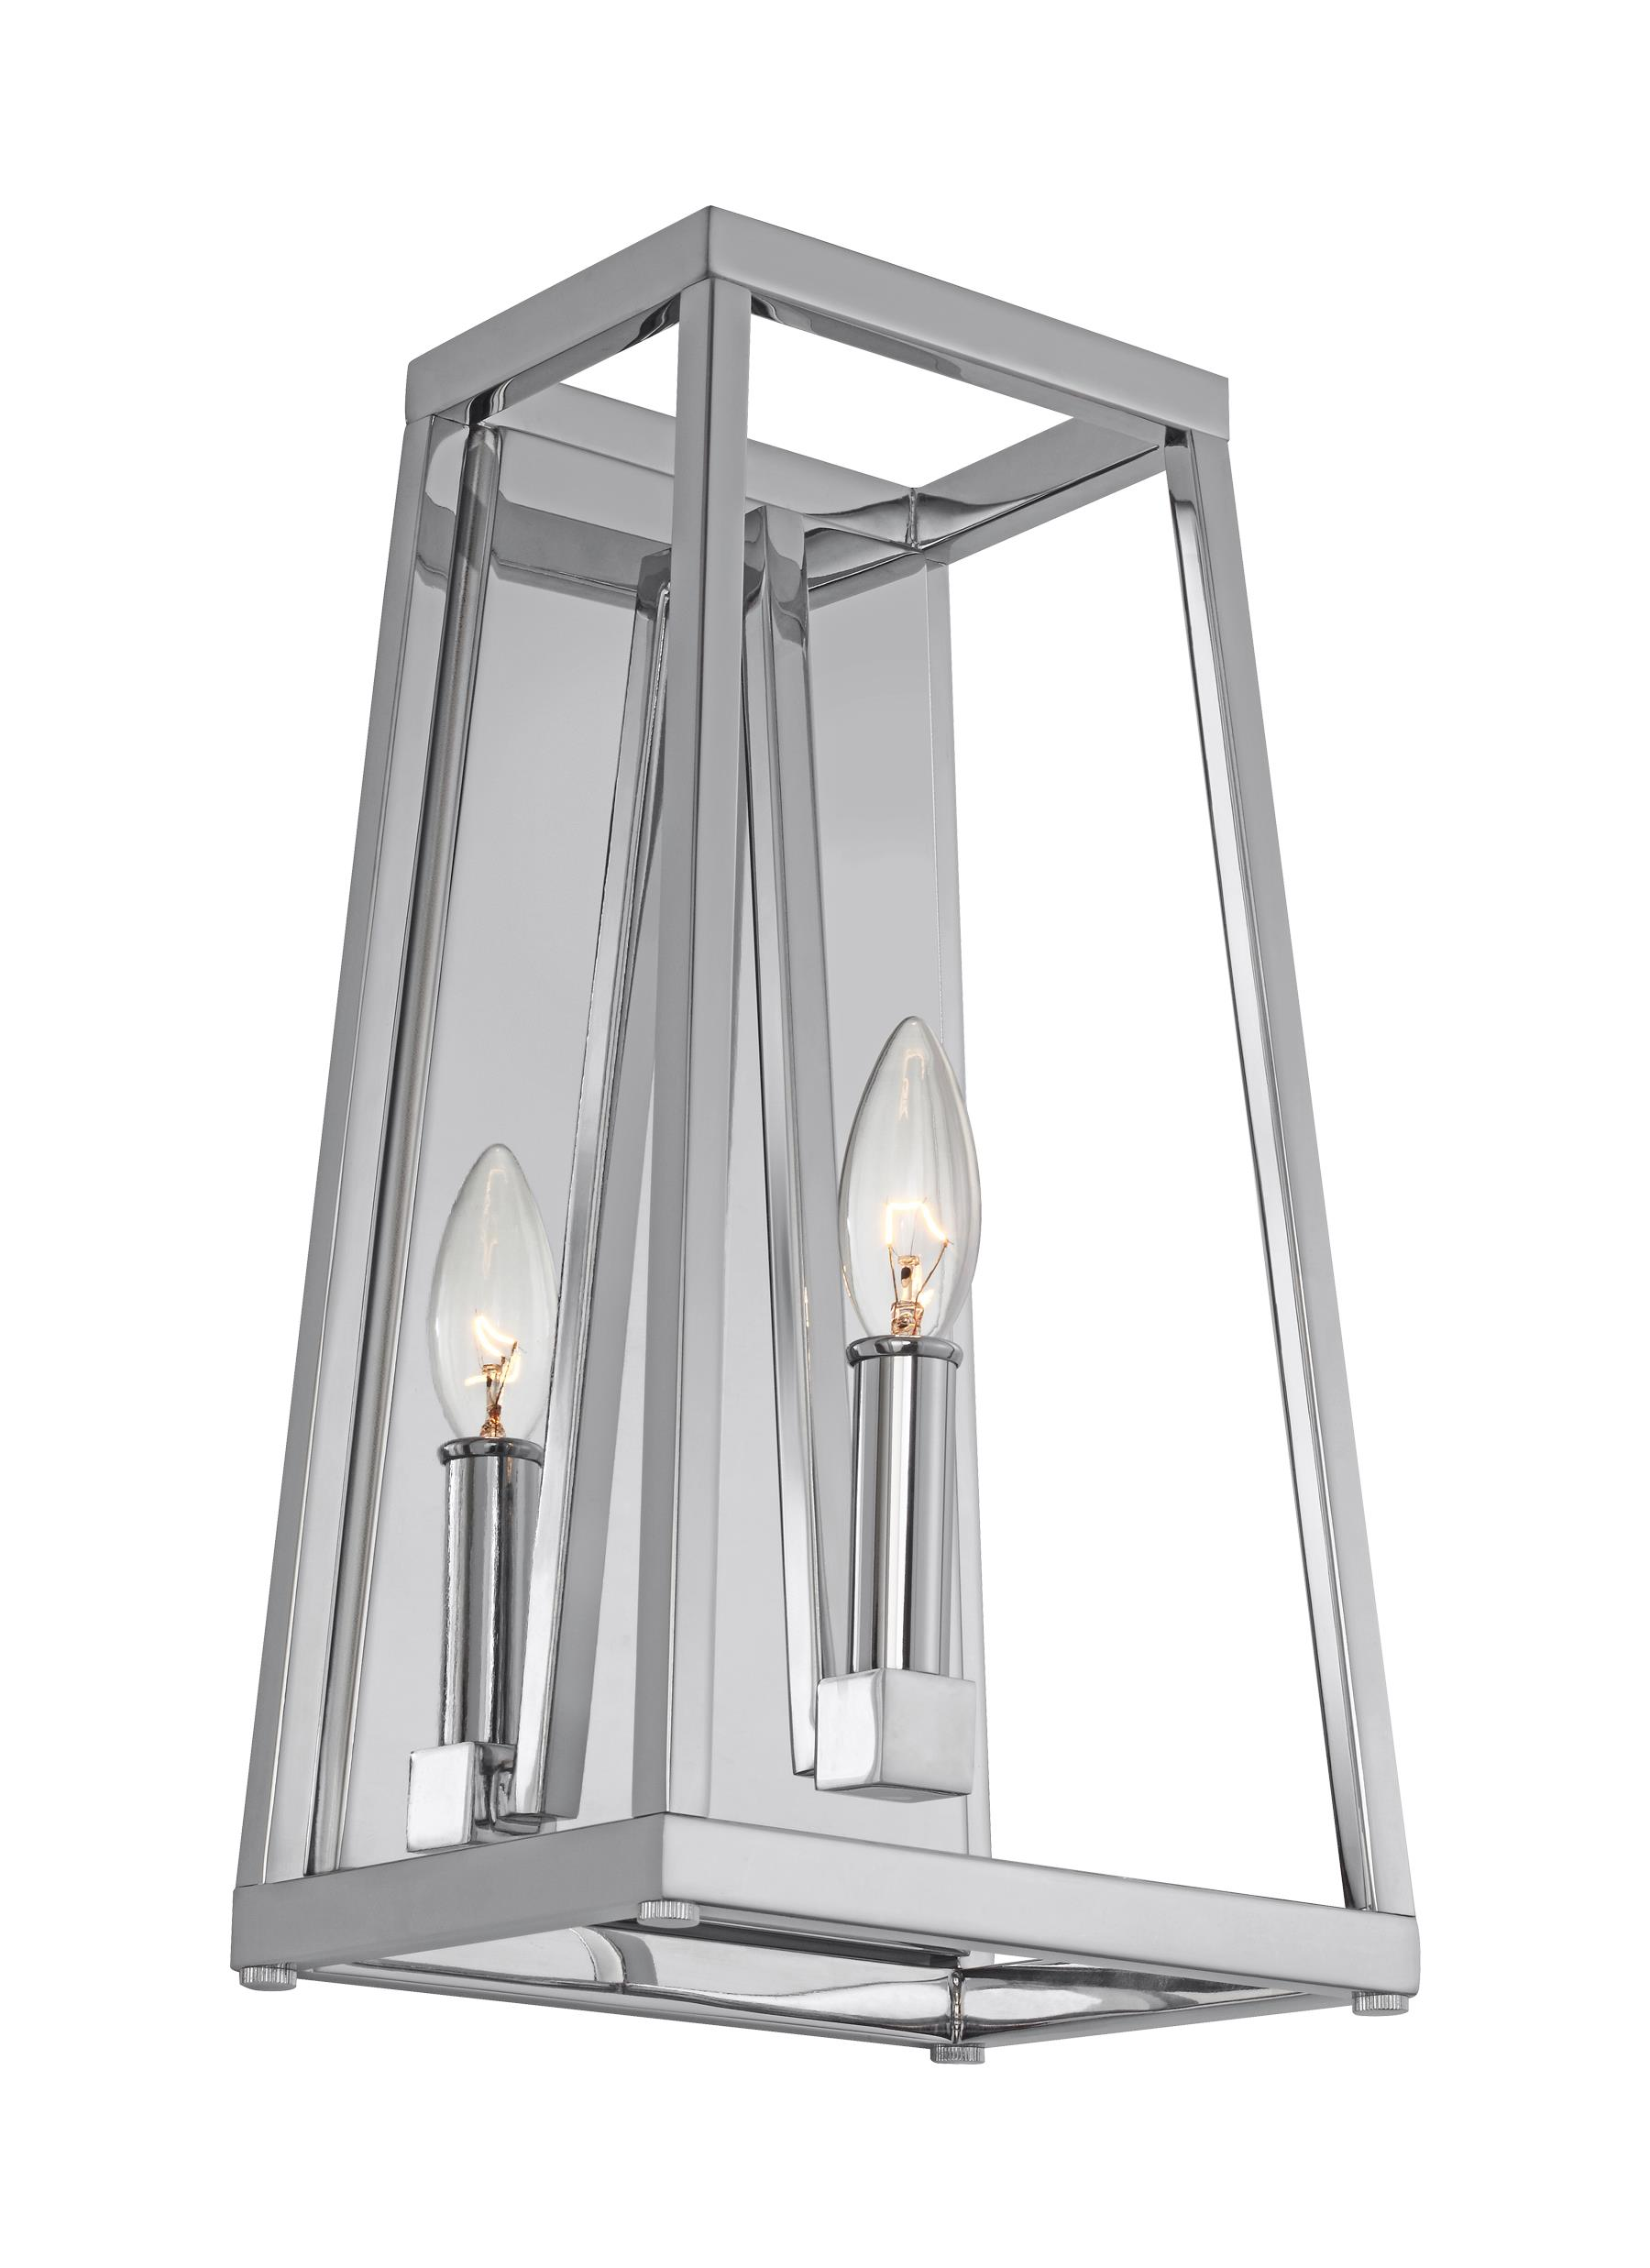 new concept 4265c 43abd WB1827CH,1 - Light Wall Sconce,Chrome